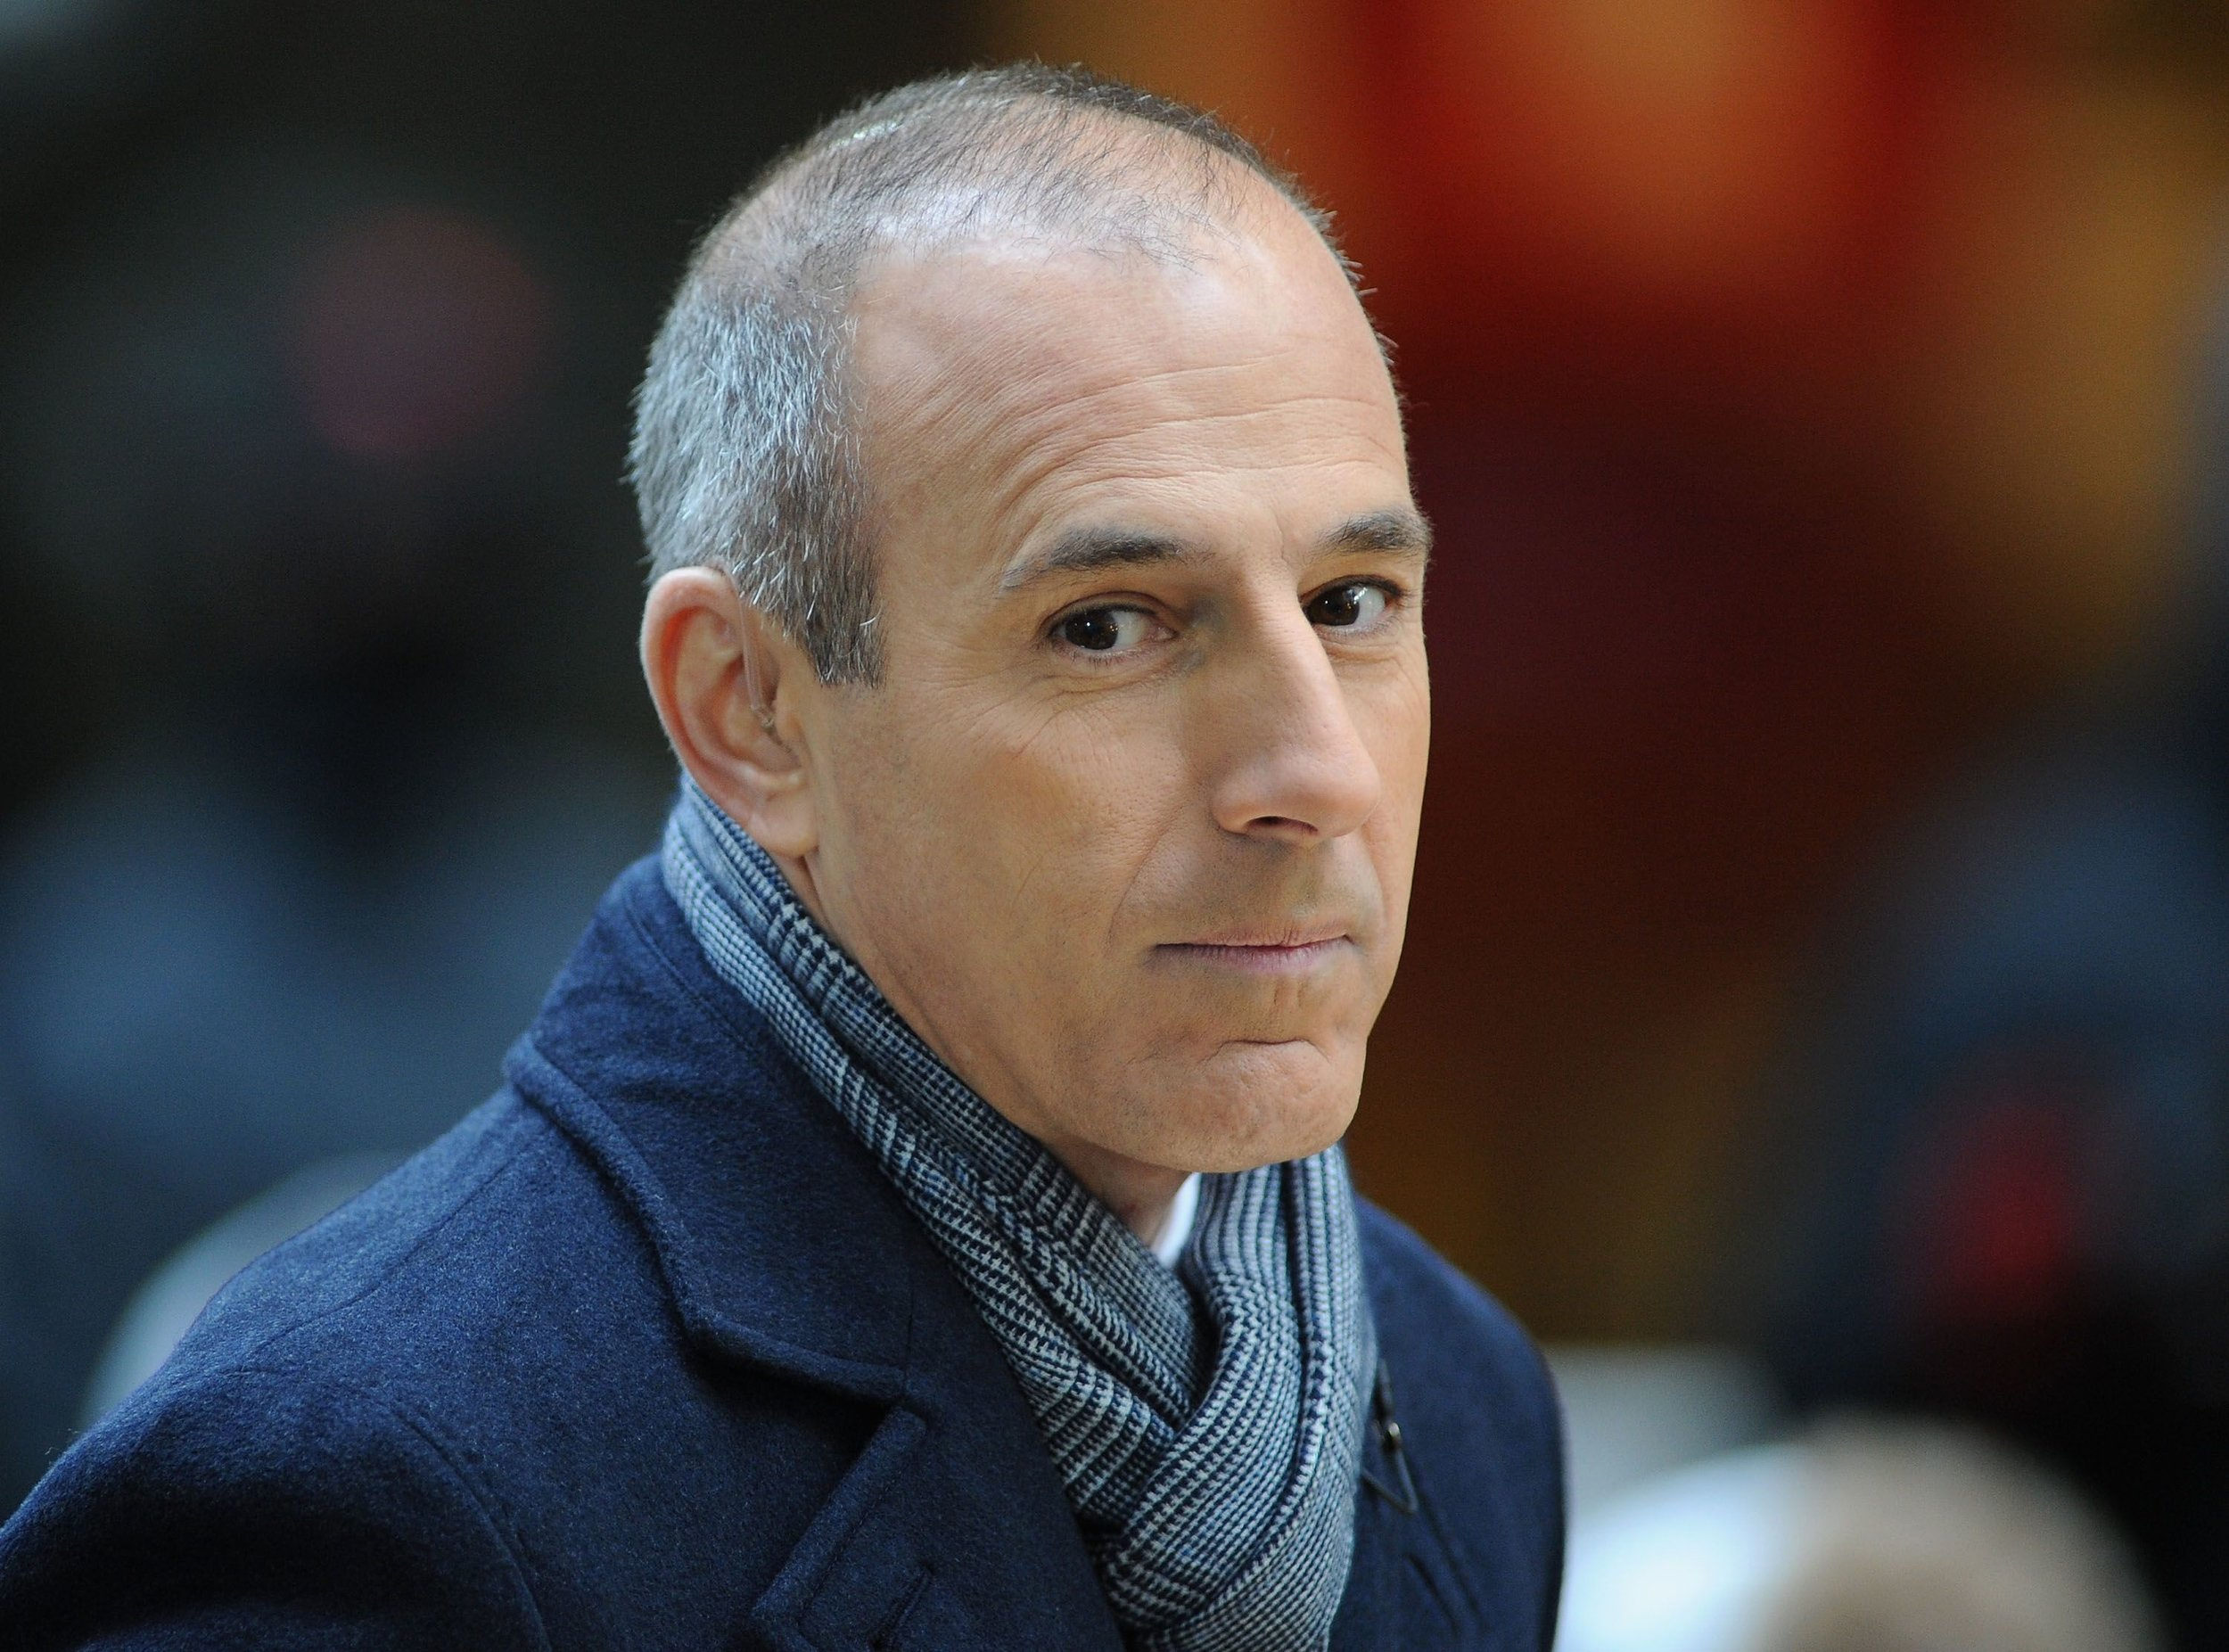 Yahoo:     Does Matt Lauer Look Different To You? Here's Why